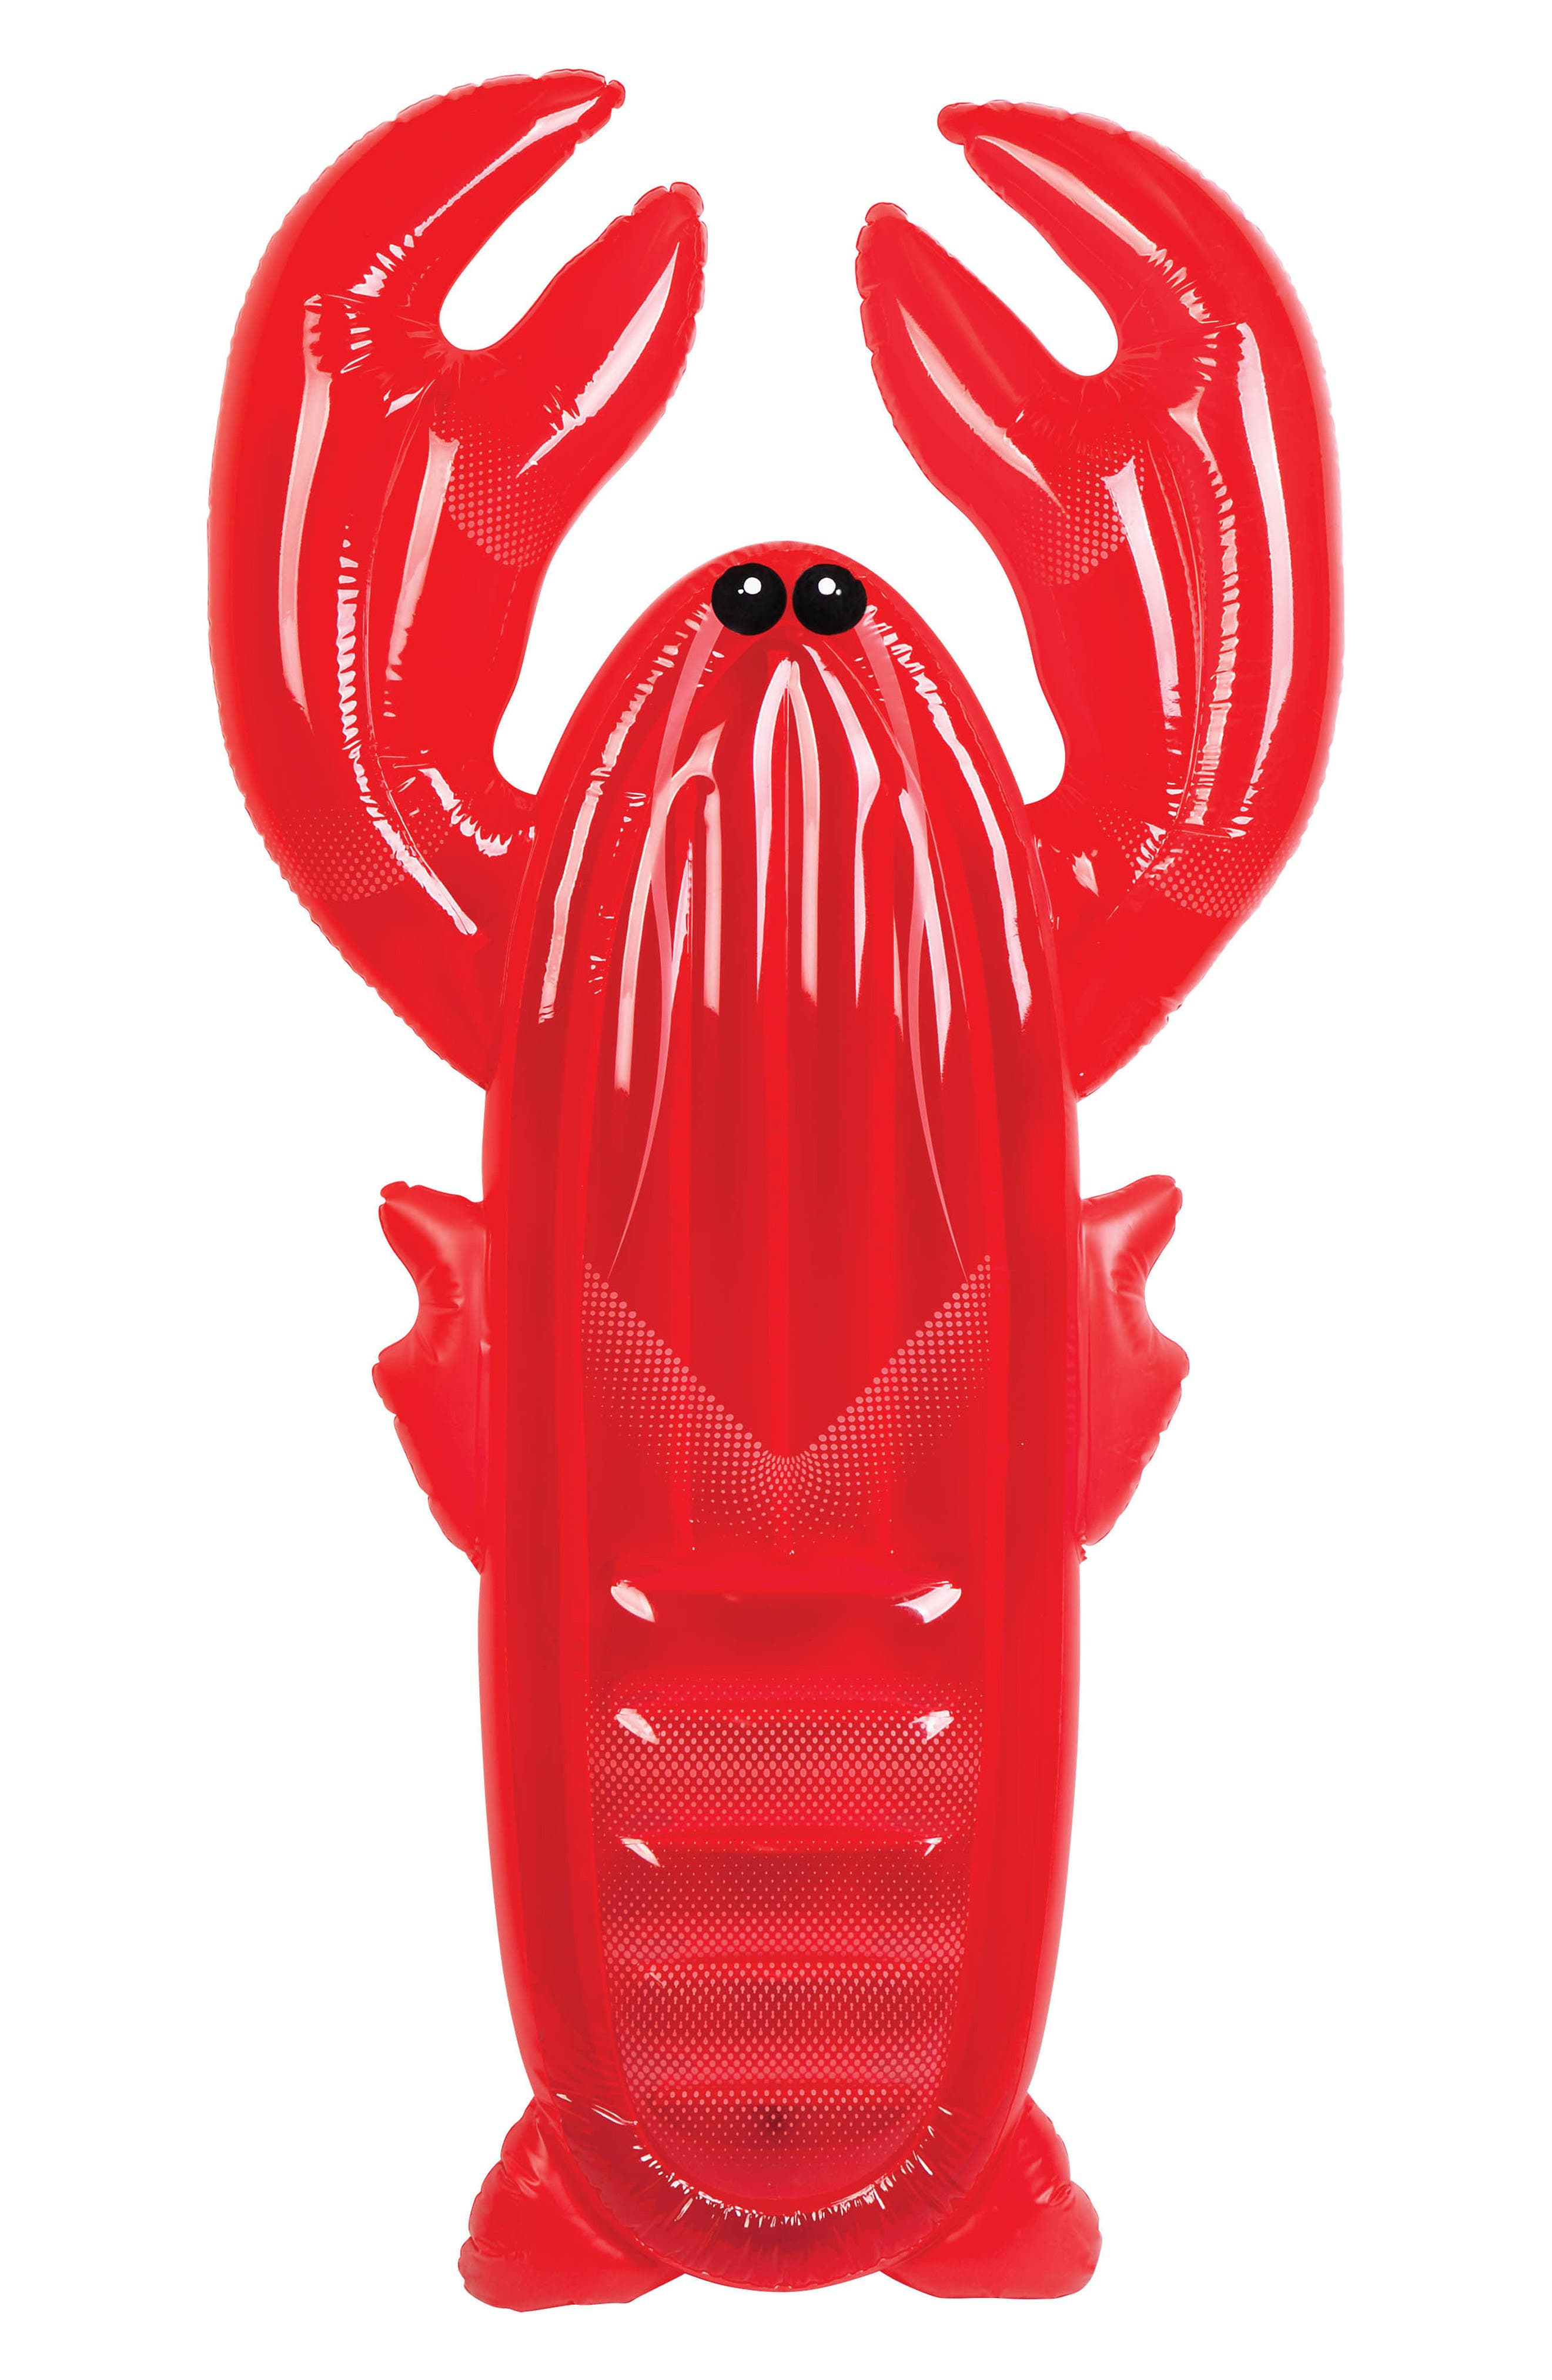 Main Image - Sunnylife Inflatable Lobster Pool Float